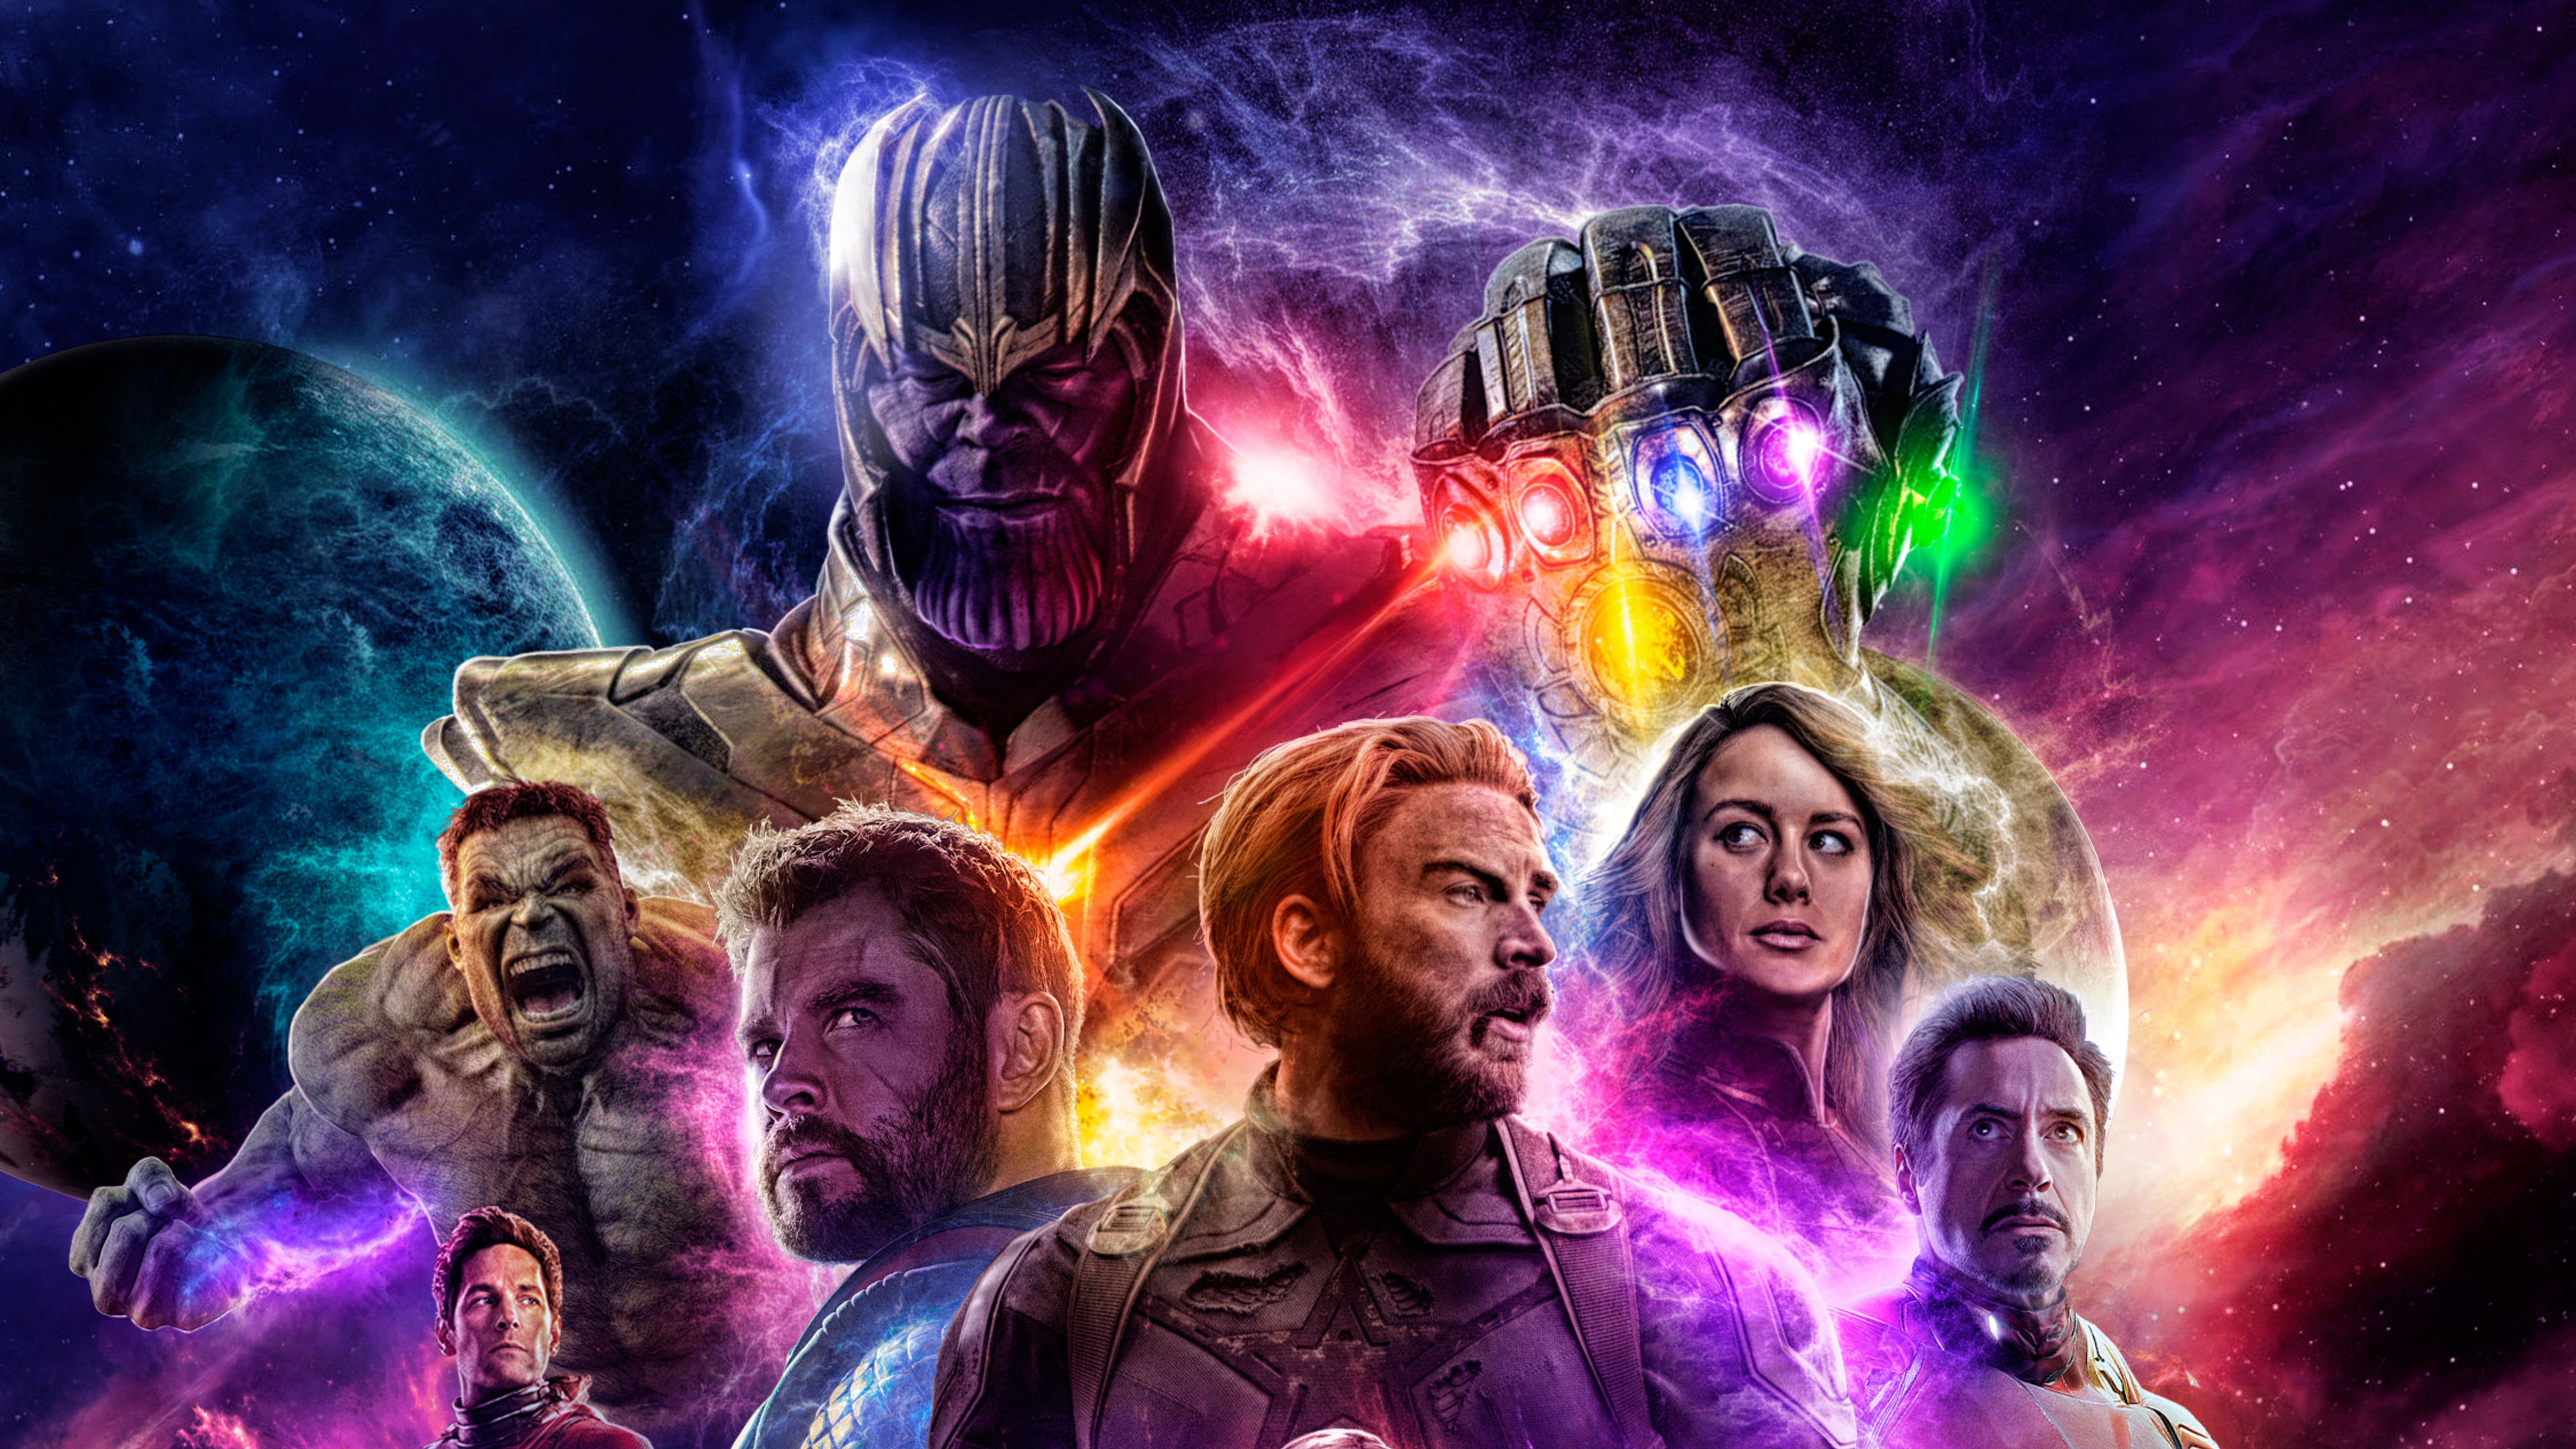 avengers 4 end game 2019 06 3840x2160 - Avengers 4 End Game Art - Avengers end game wallpapers hd 4k, Avengers End Game poster hd 4k 2019, Avengers end game 2019 wallpapers hd 4k, Avengers 4 End Game 4k wallpapers